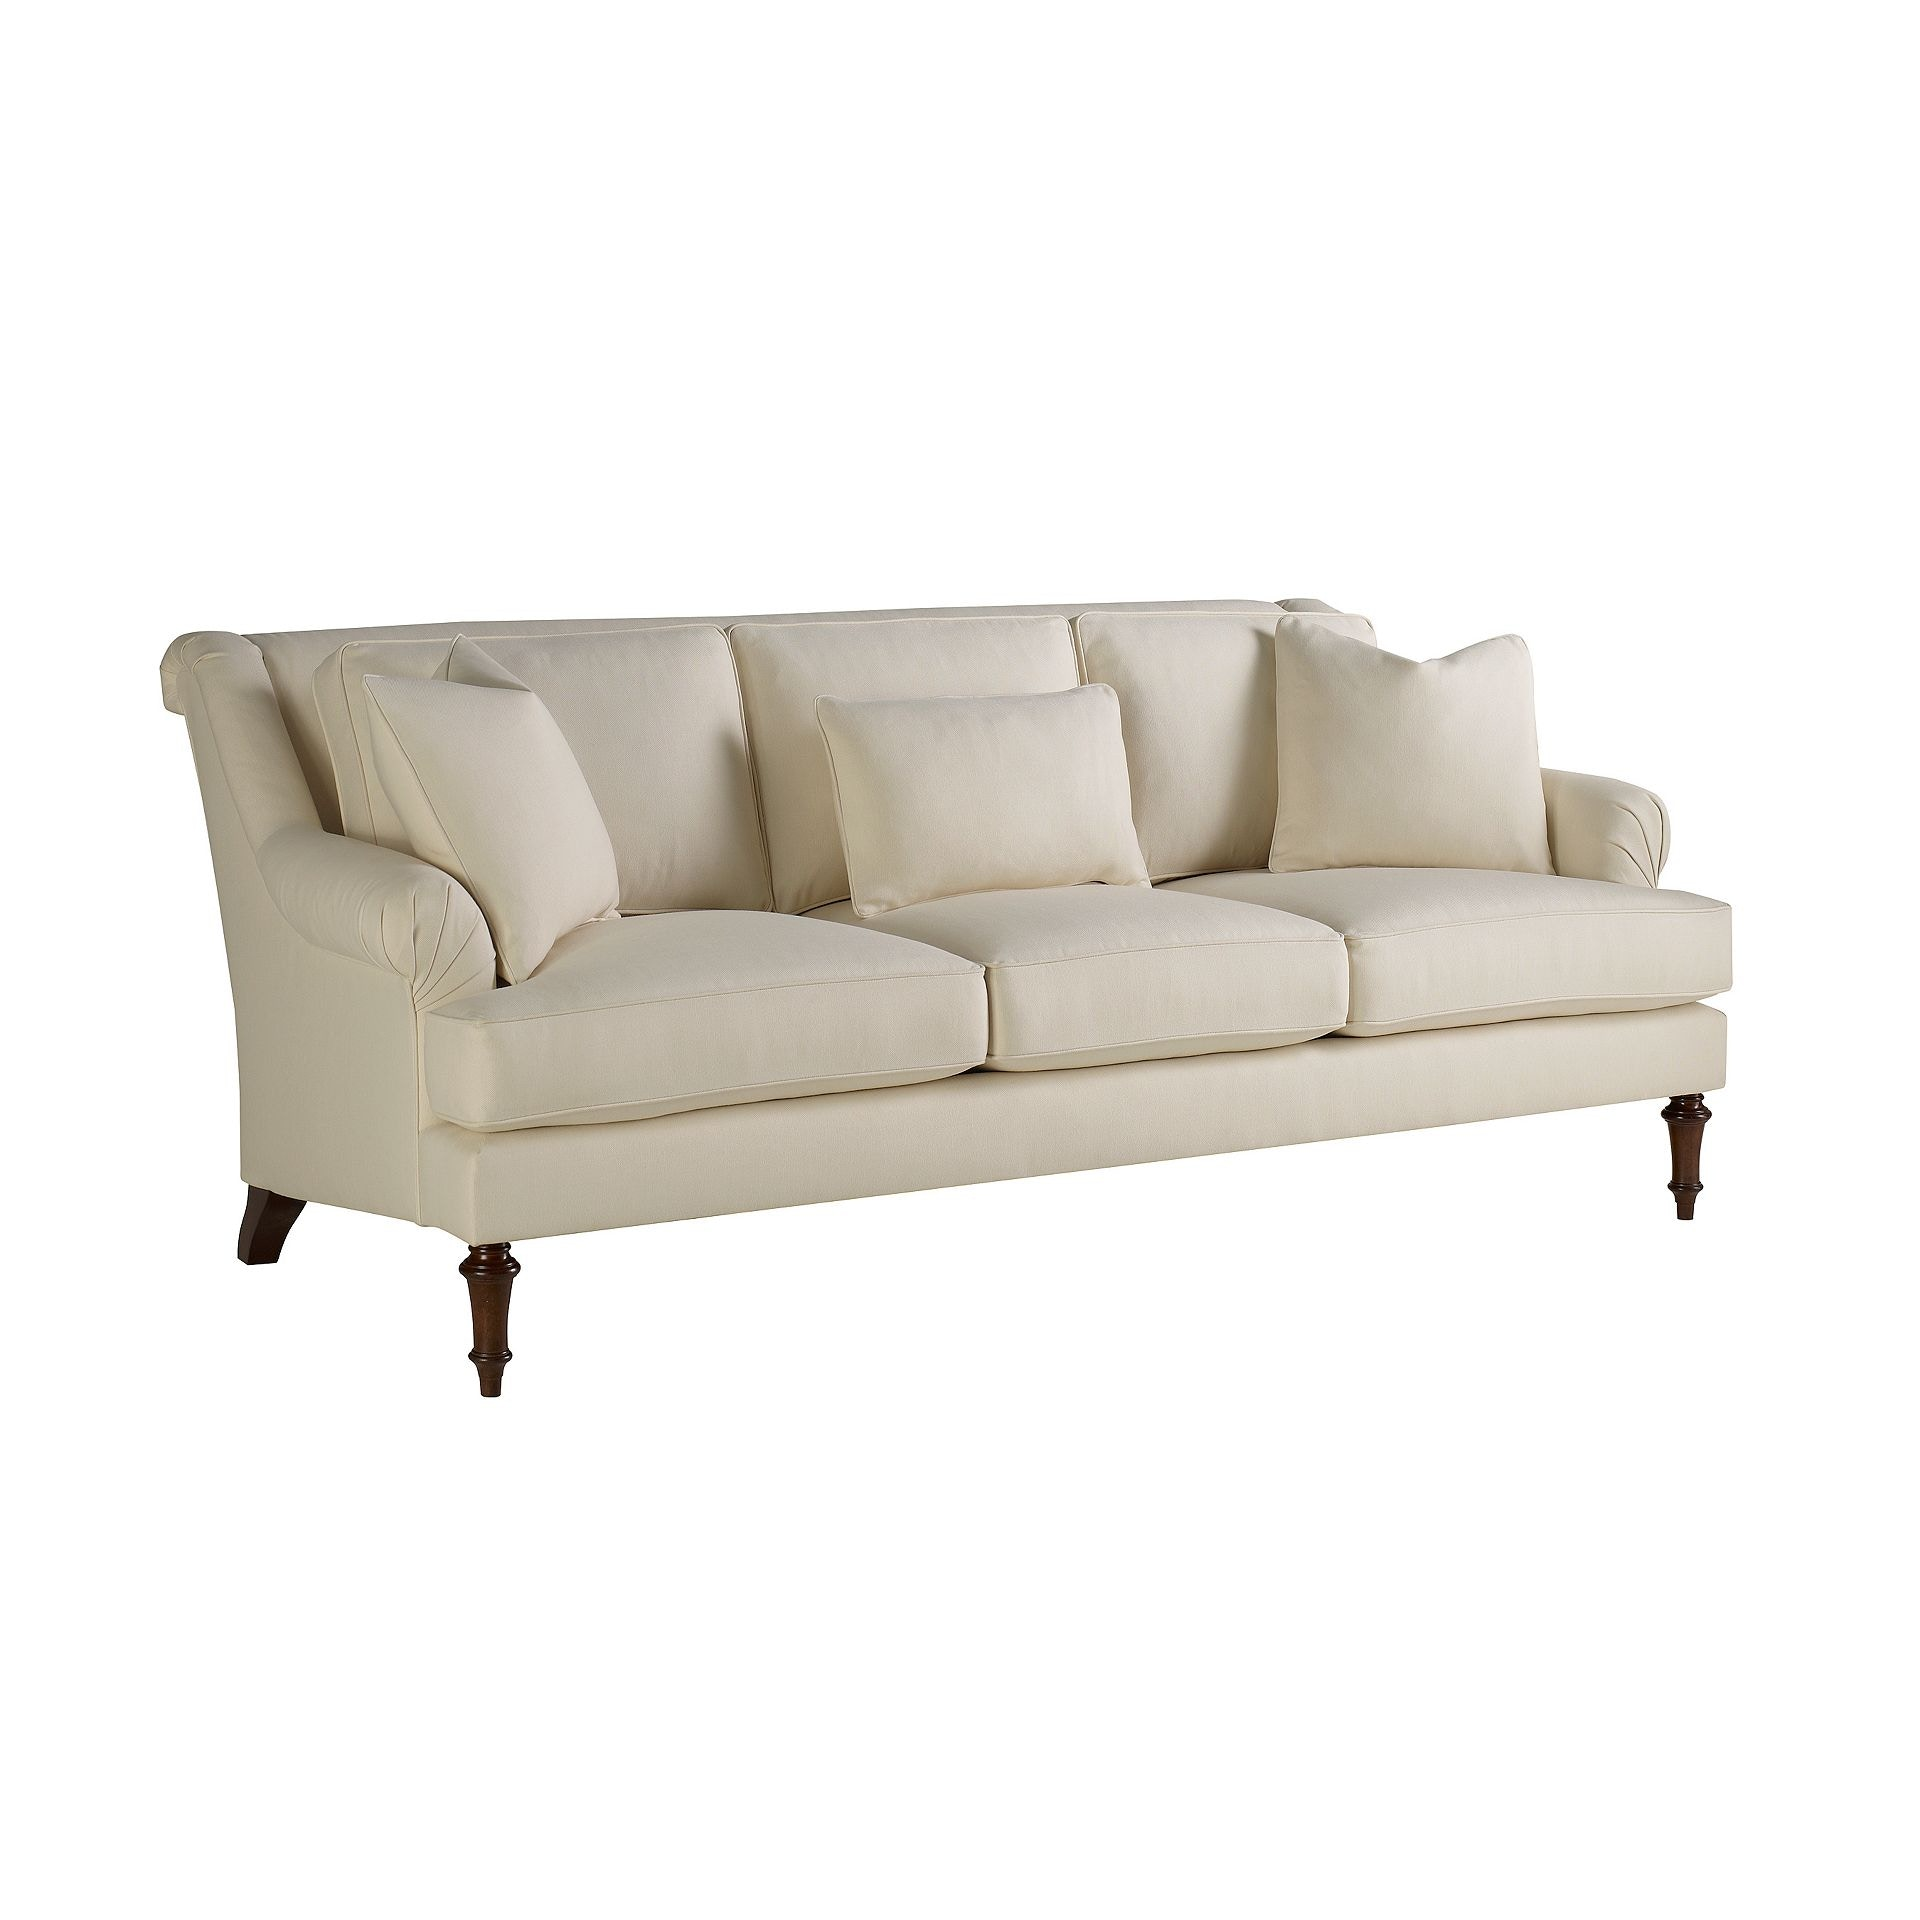 Henredon Furniture Celerie Kemble For Henredon Napoleon Sofa H1307 C